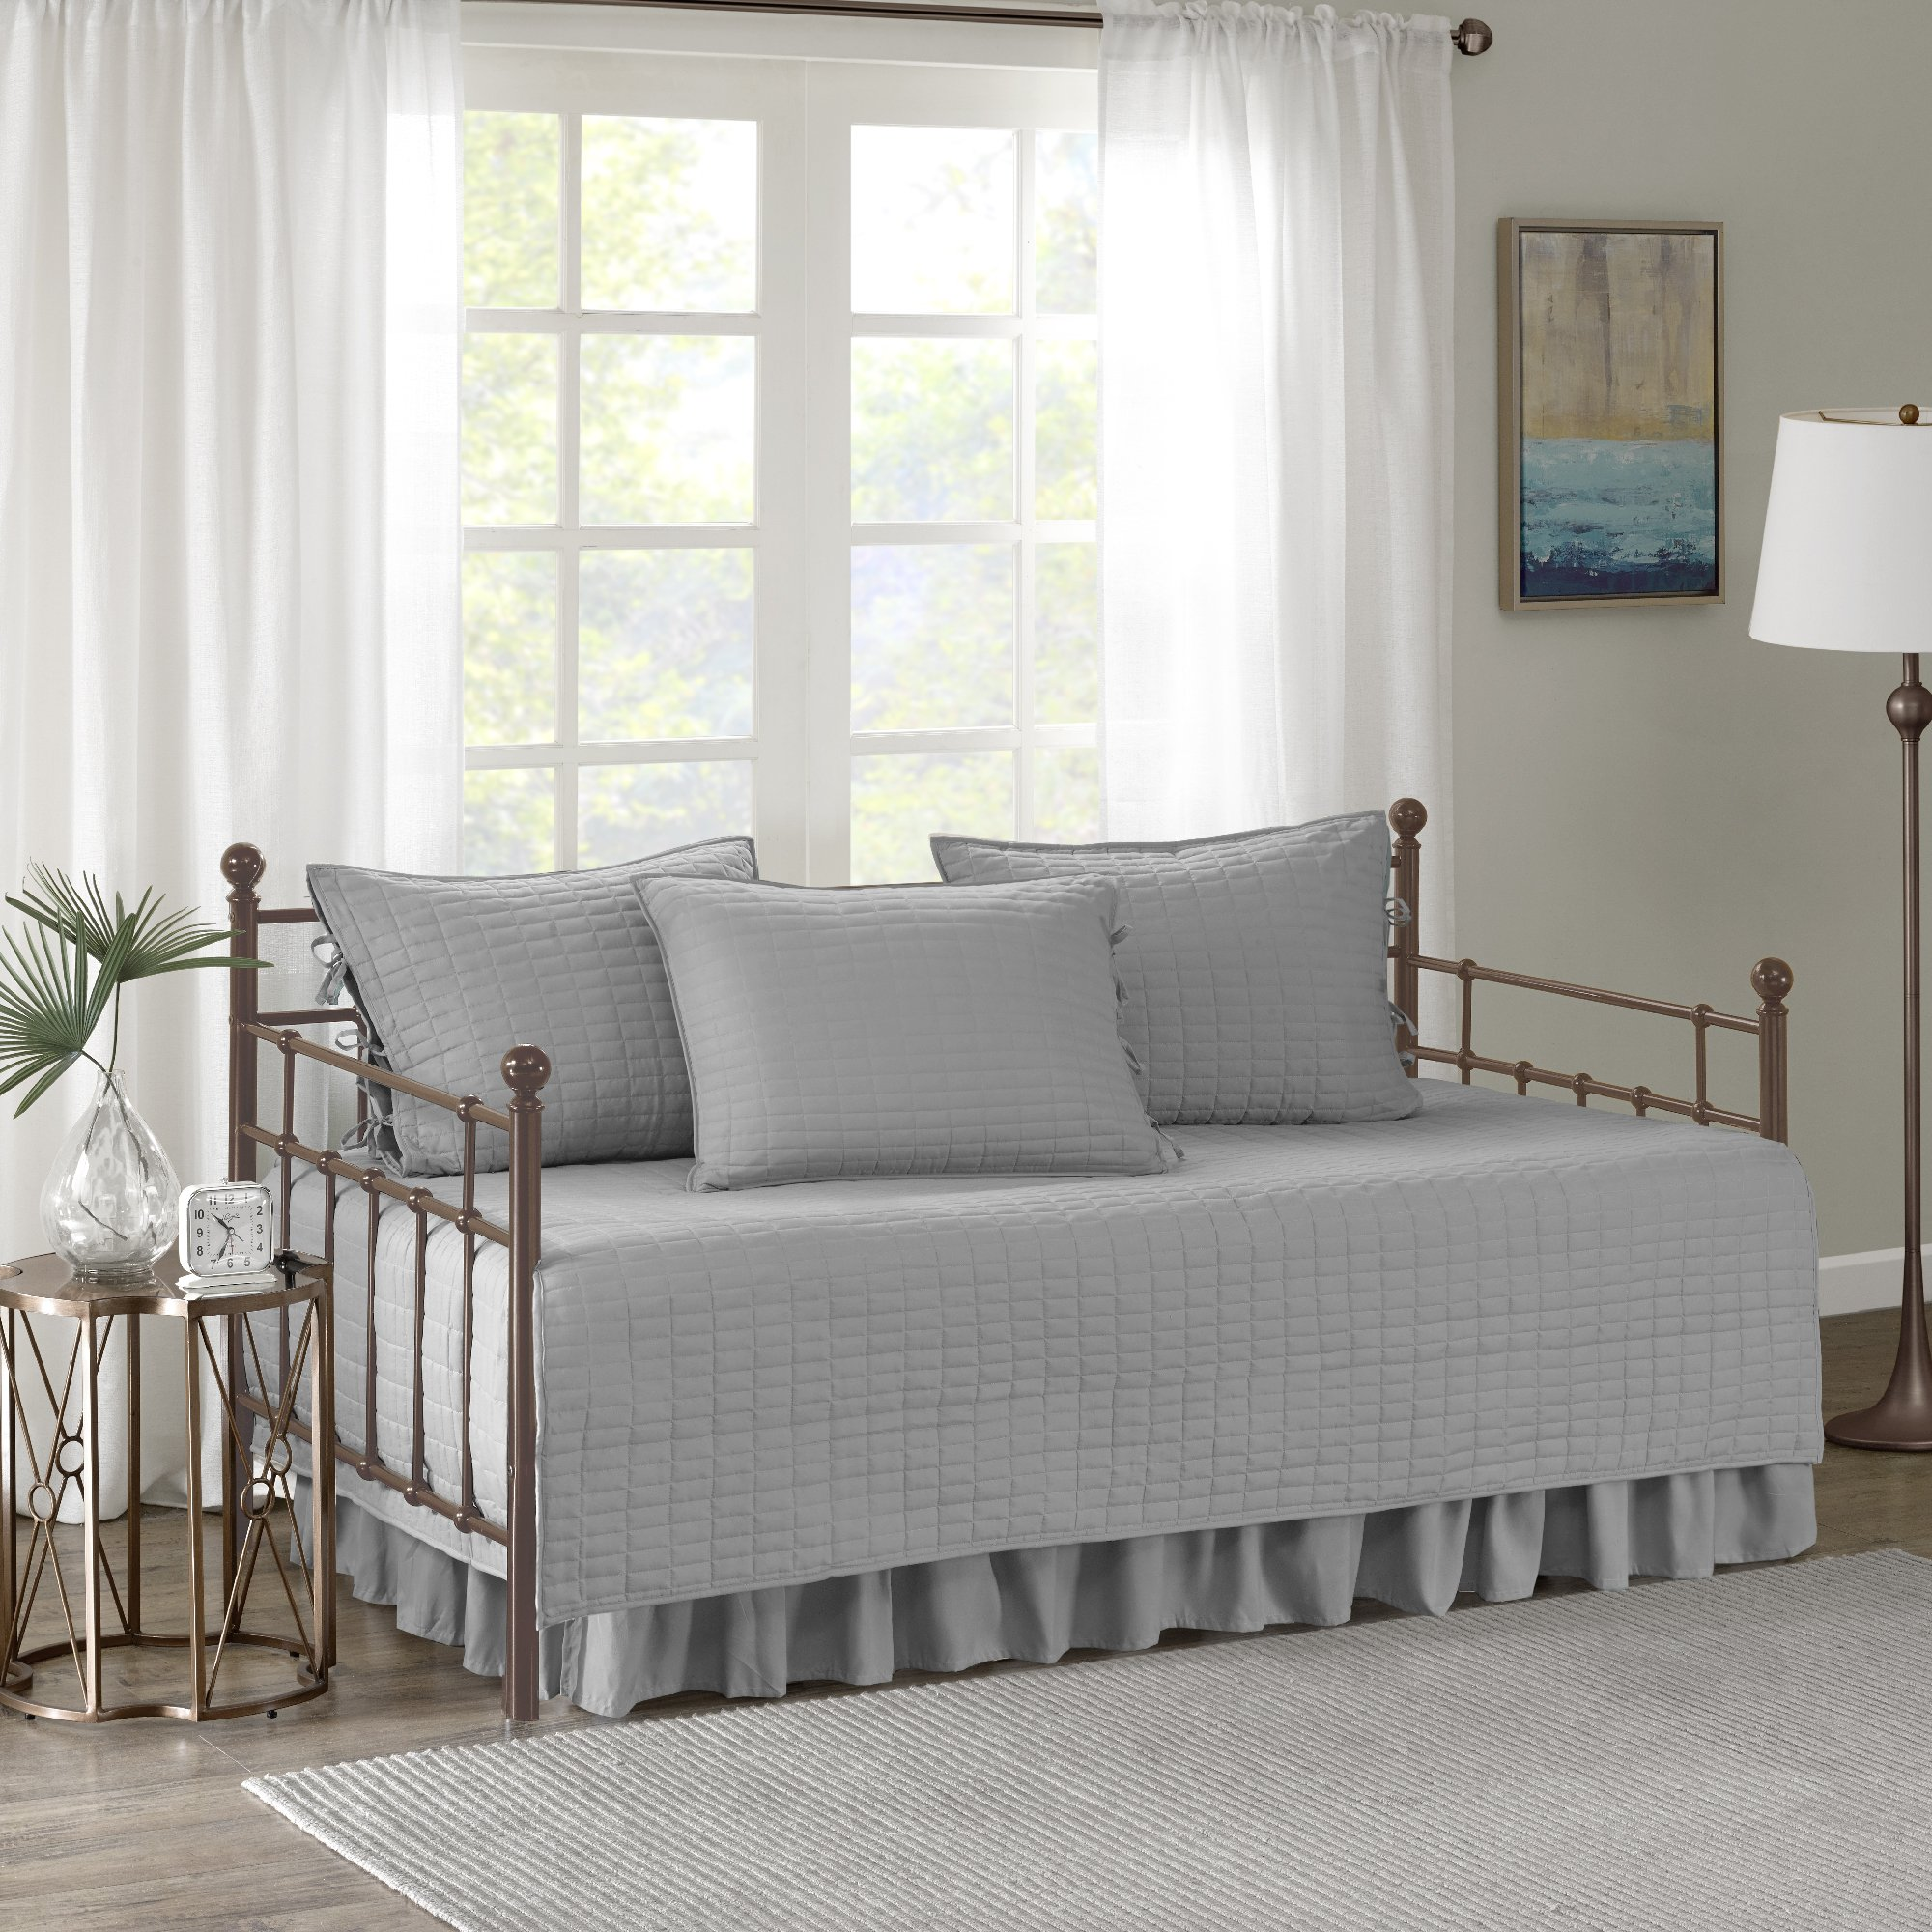 Comfort Spaces - Kienna Daybed Set - Stitched Quilt Pattern - 5 Pieces - Grey - Includes 1 Bed Spread, 1 Bed Skirt and 3 Pillow Cases